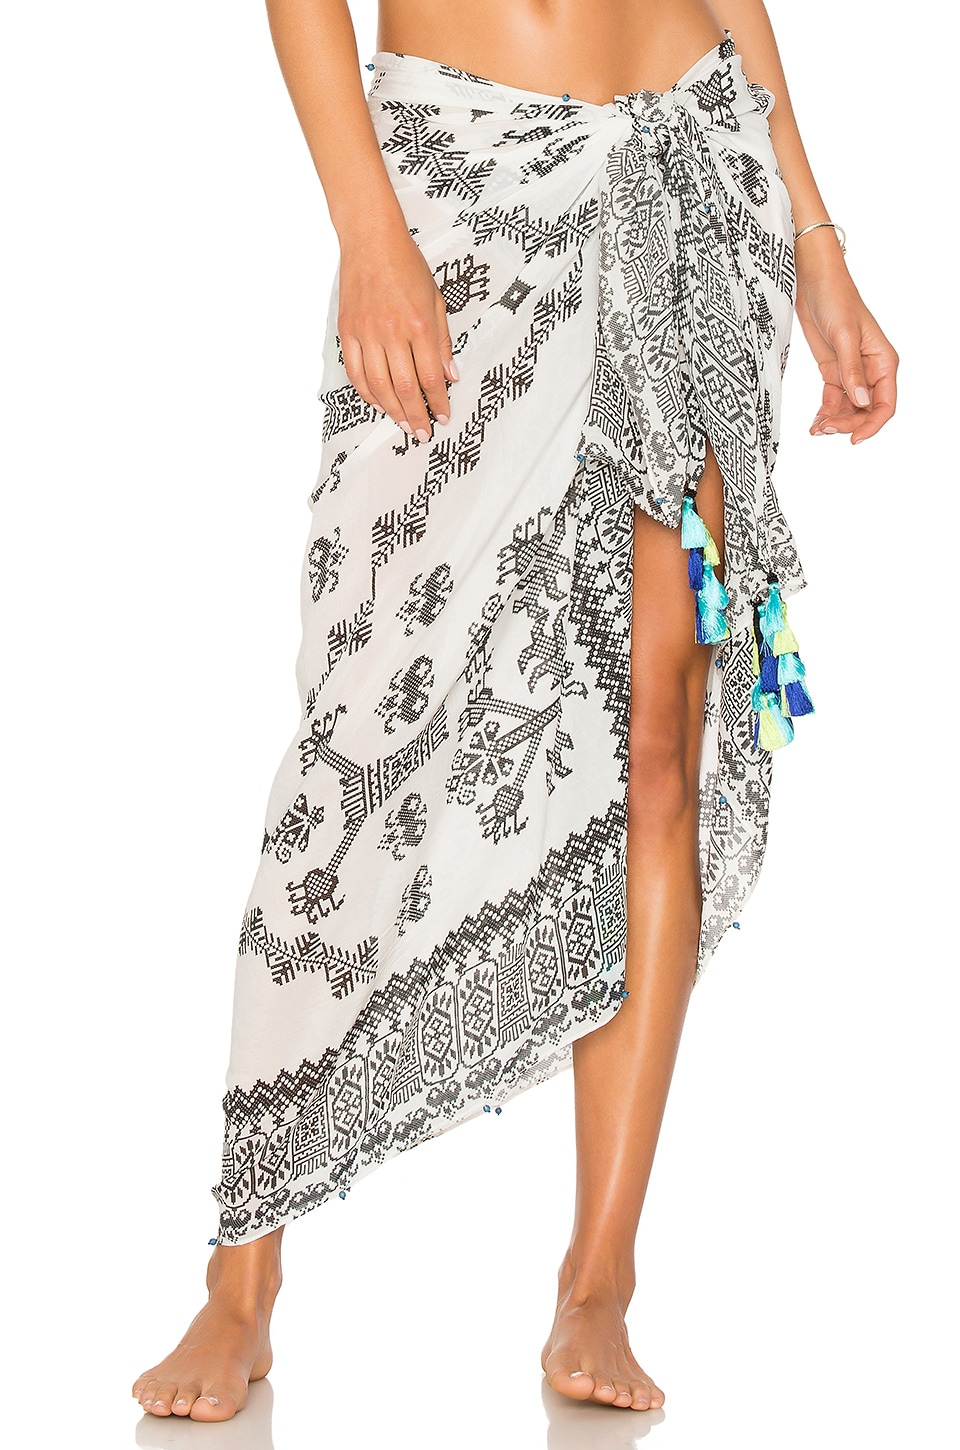 ROCOCO SAND Sarong in Black & White